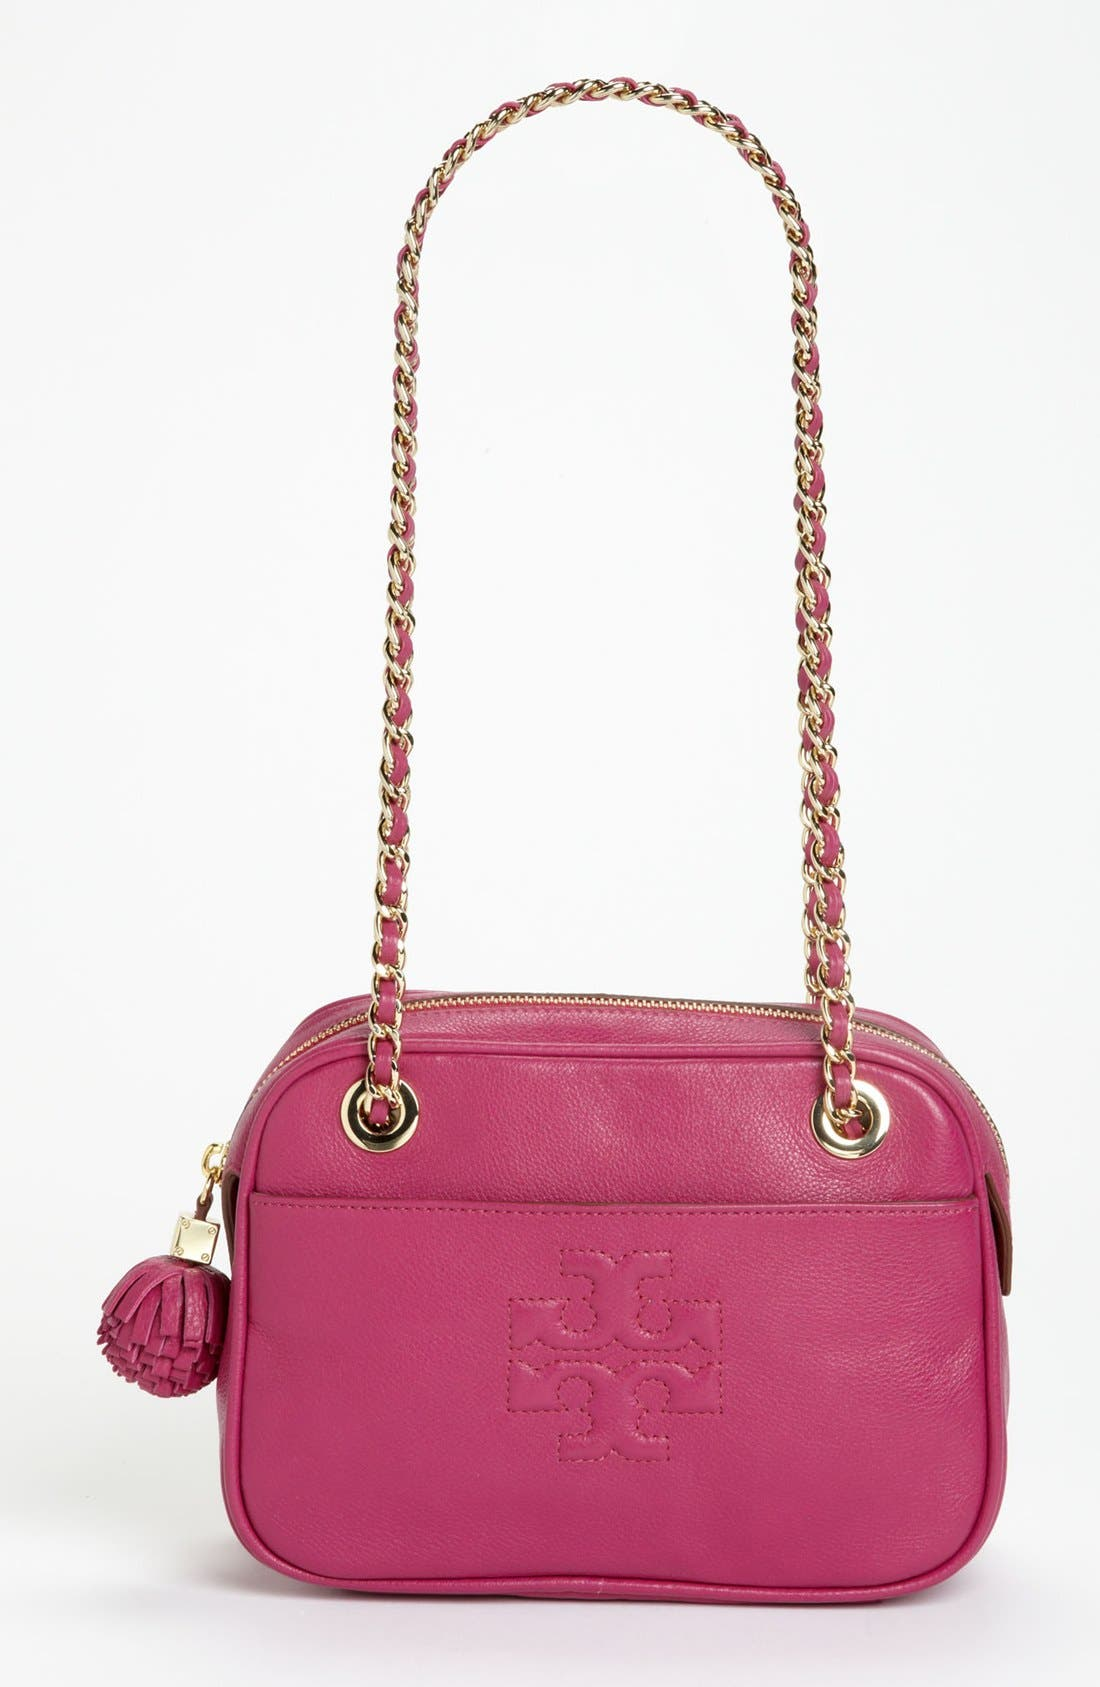 Main Image - Tory Burch 'Thea' Leather Crossbody Bag